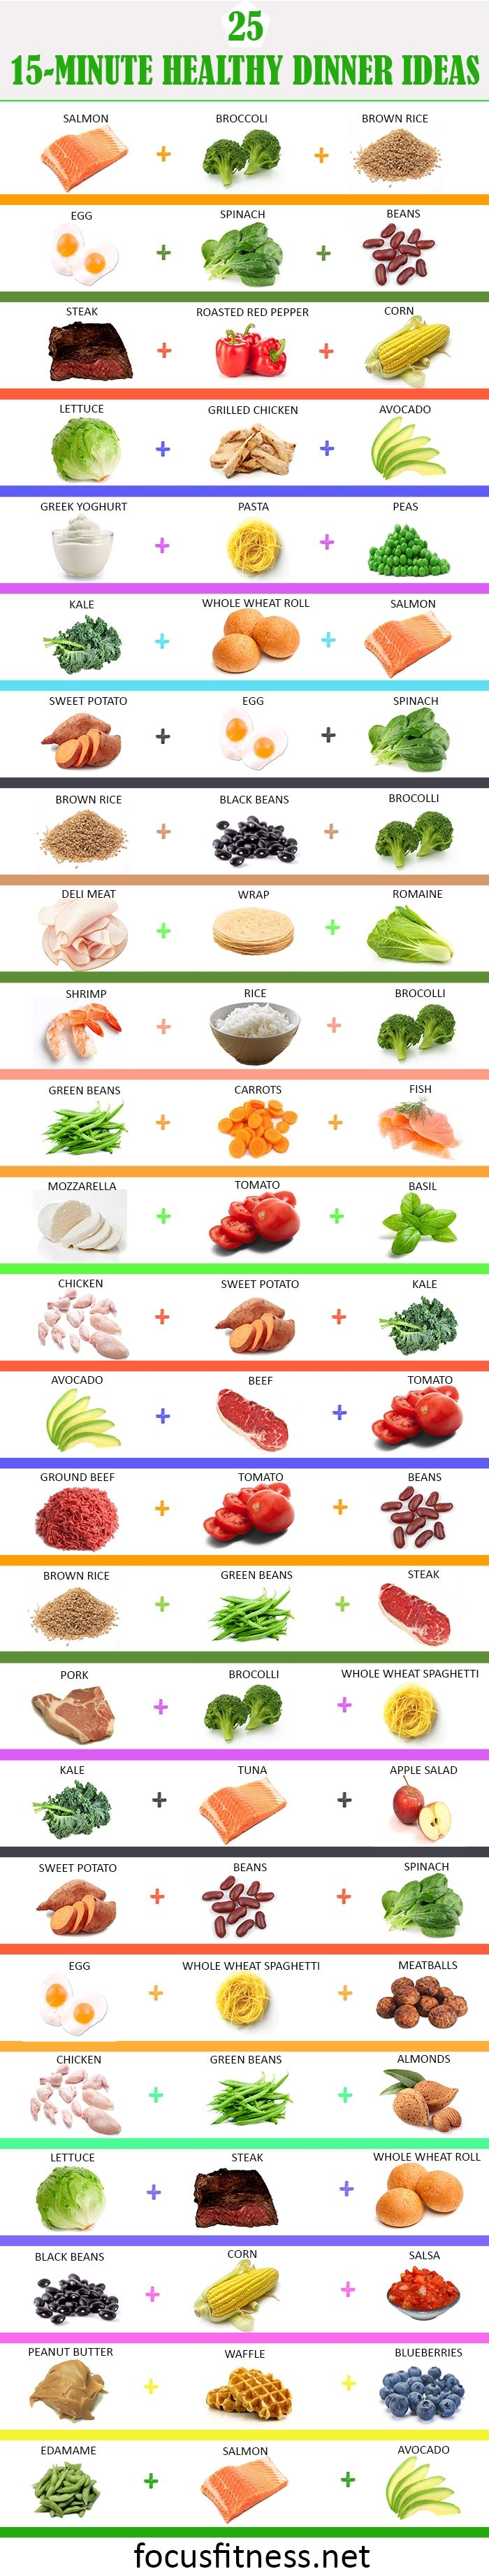 25 Healthy Dinner Ideas for Weight Loss That Take Less Than 15 Minutes to Make! #weightlossmotivation